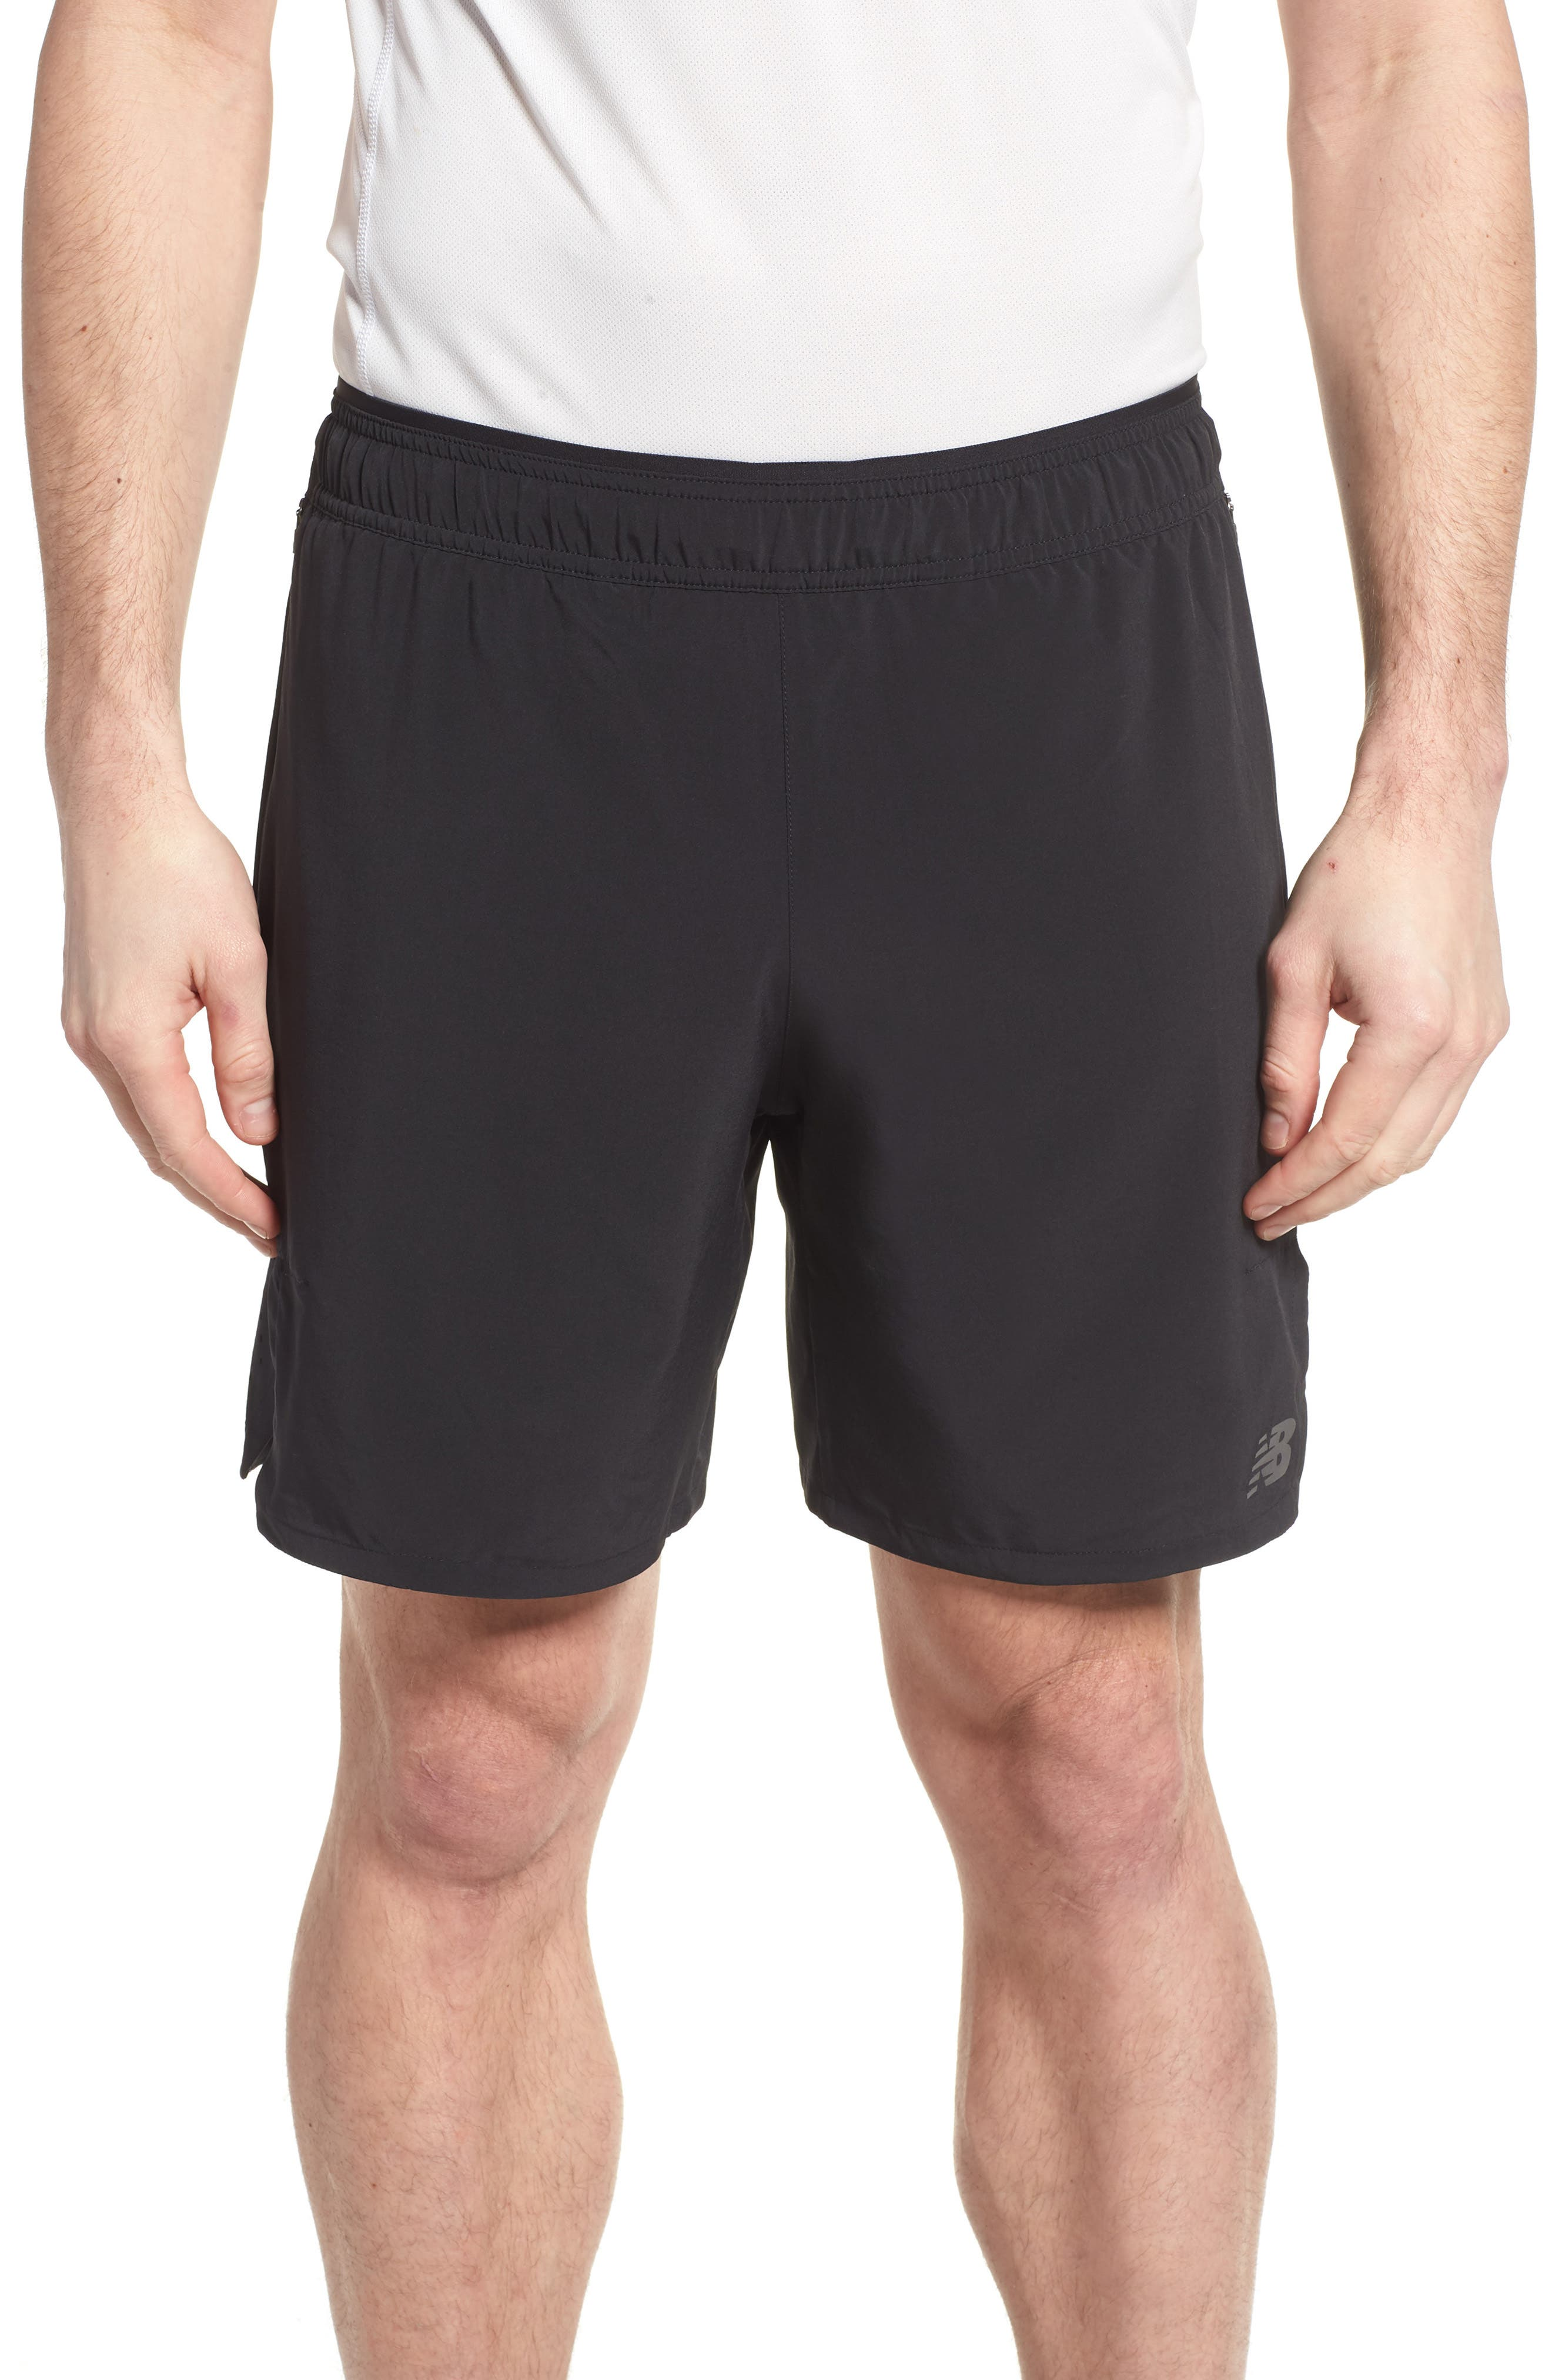 Transform 2-in-1 Shorts,                         Main,                         color, Black